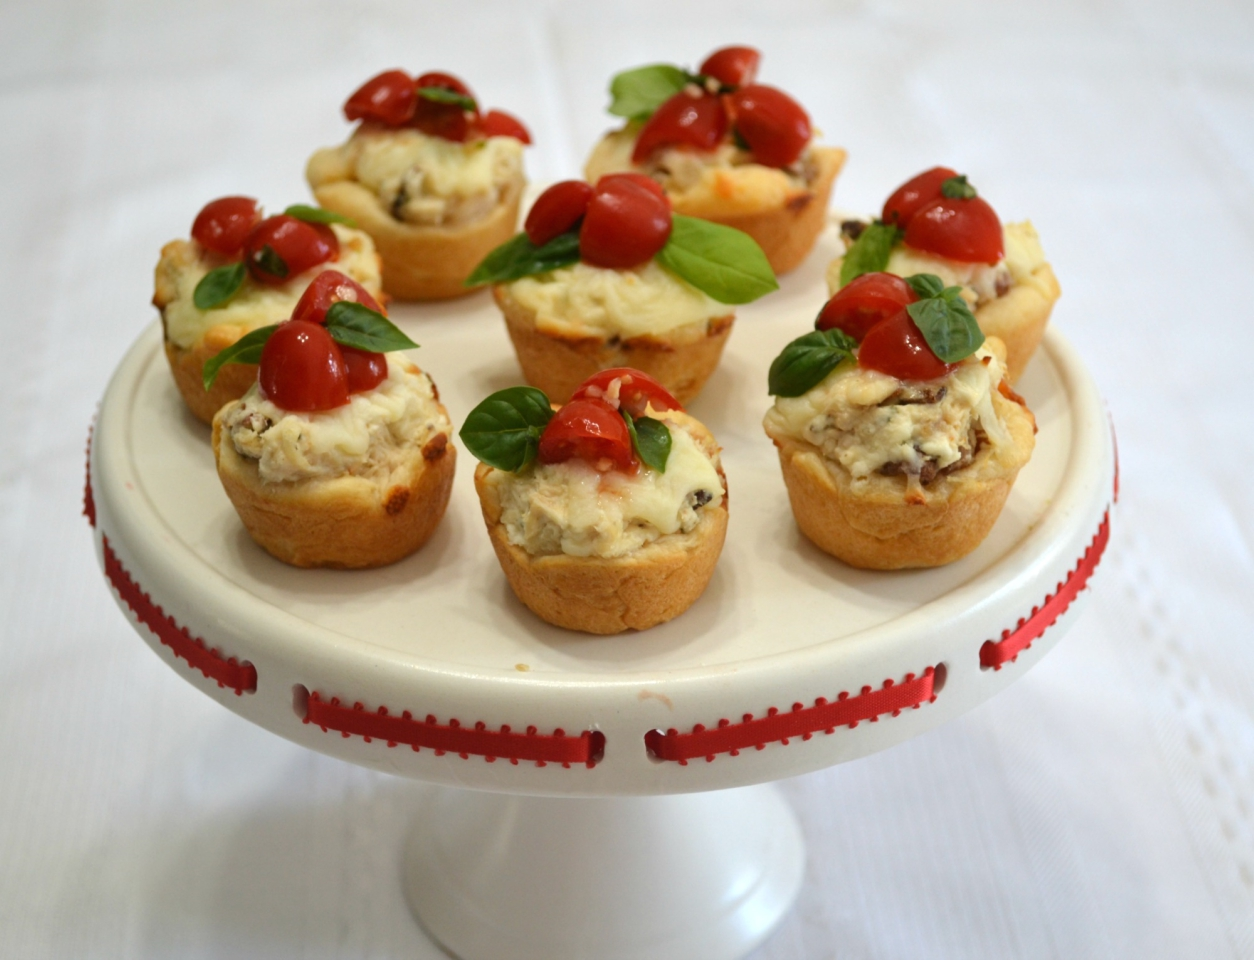 Chicken-Bacon-Caprese Bites are perfect to add to your tailgate menu. Chicken, cheese and a caprese topping baked in a crescent dough cup